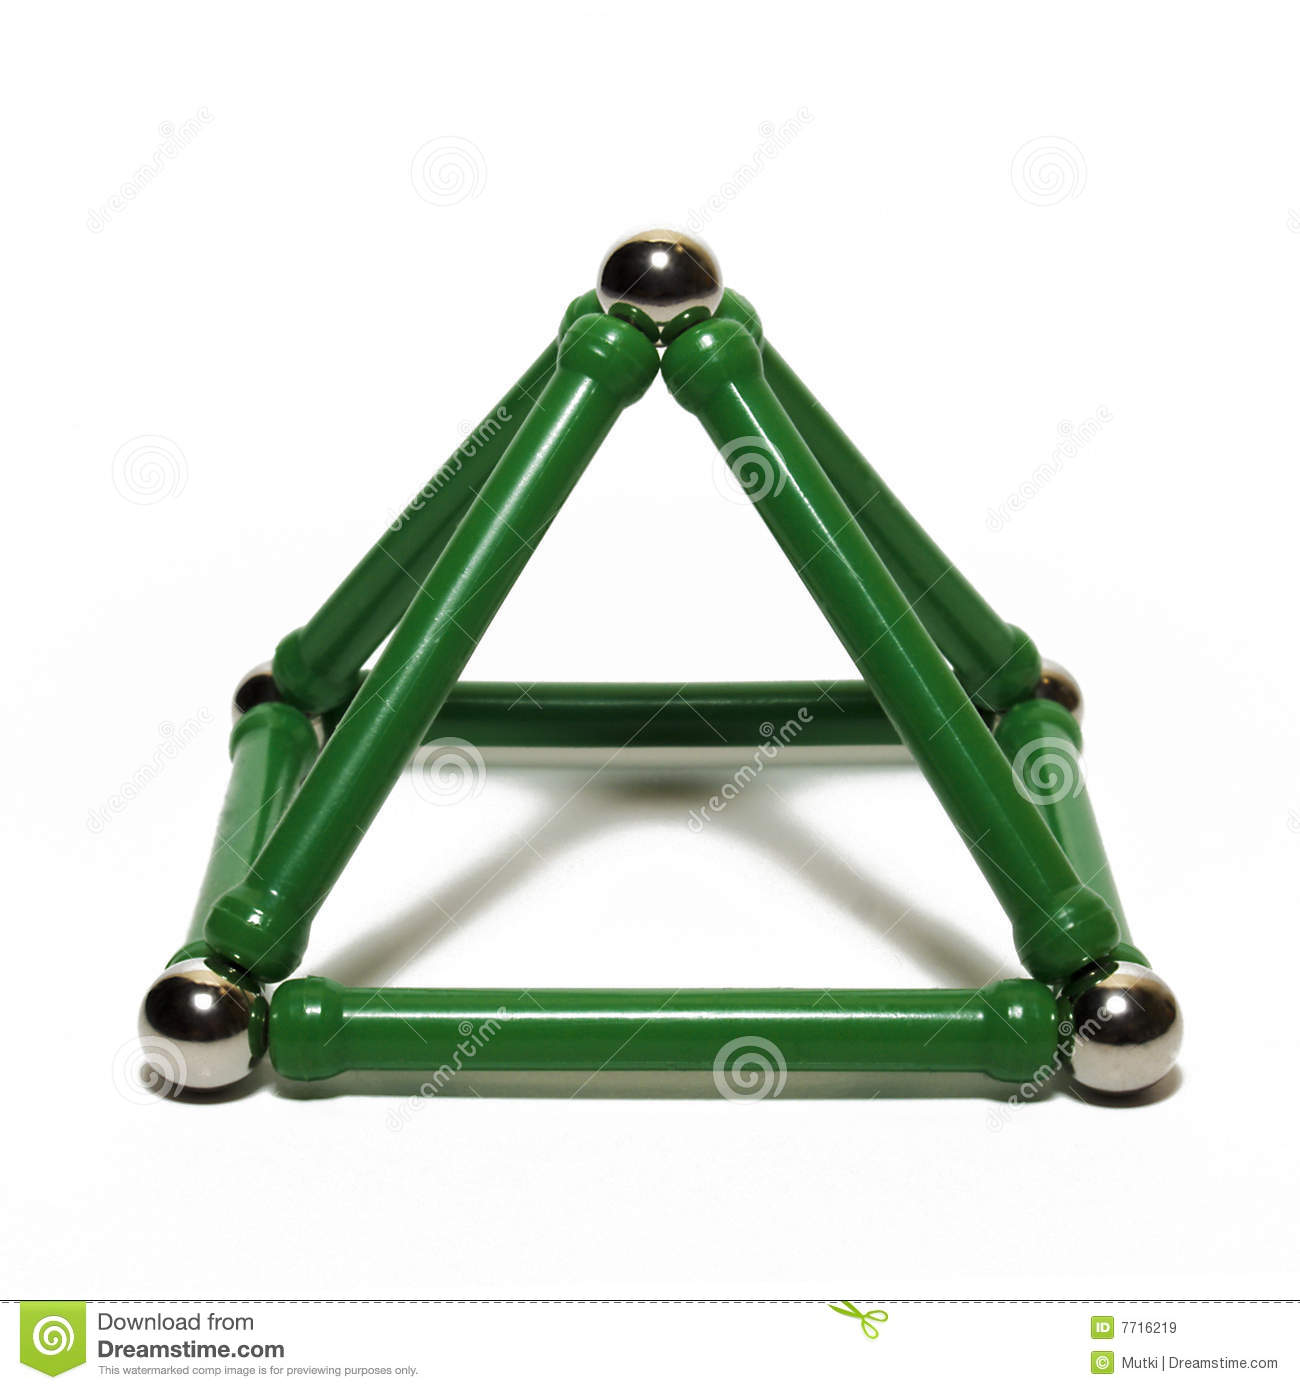 Pyramid toy on a white background